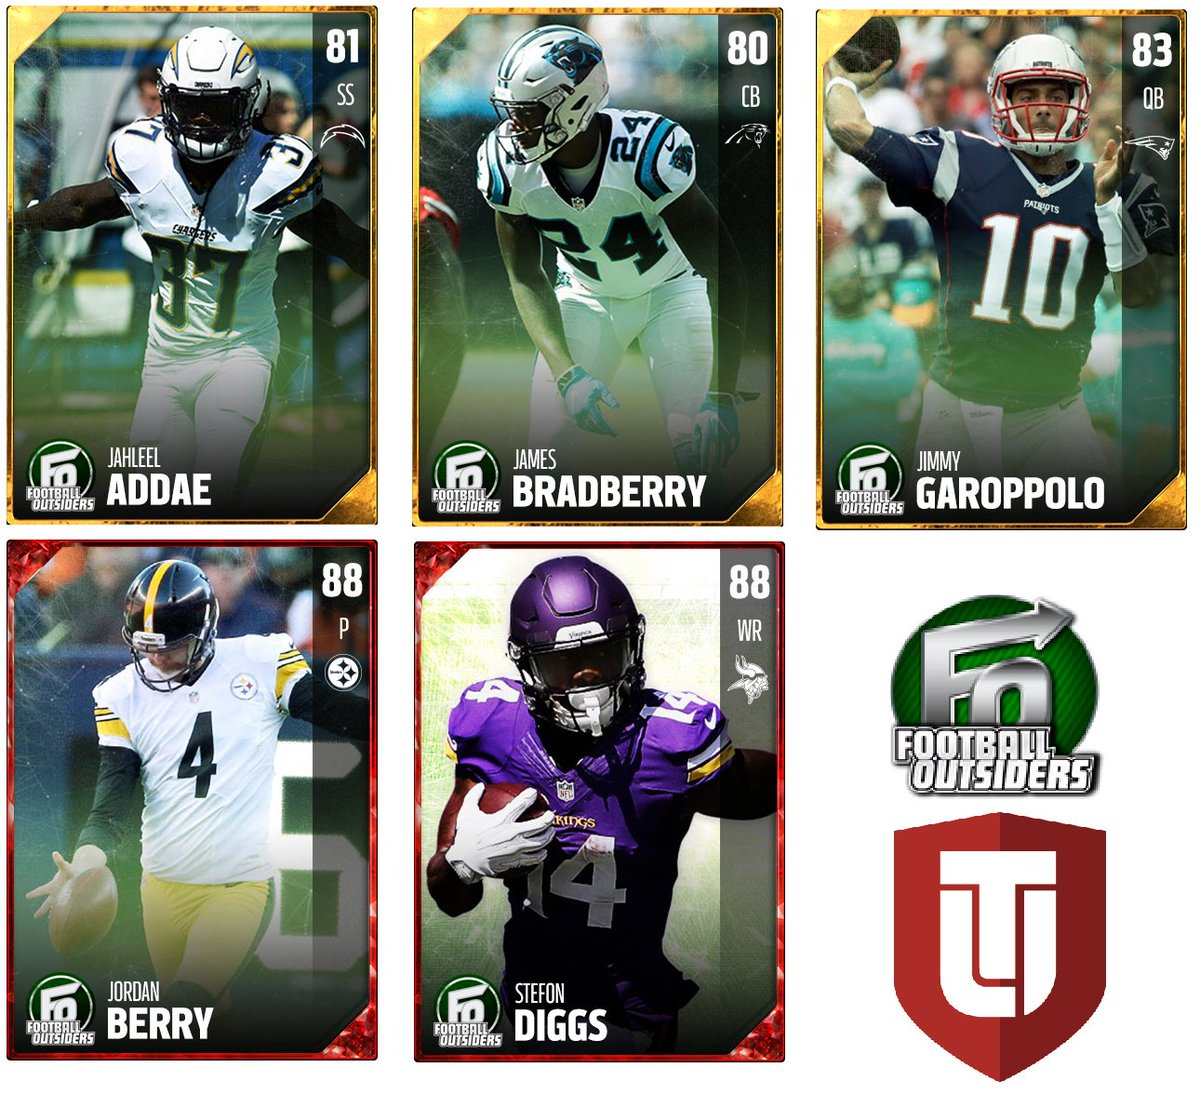 Here are the new Football Outsiders entering @EASPORTS_MUT packs this morning at 11am Eastern! https://t.co/ONG3nxf8Ce